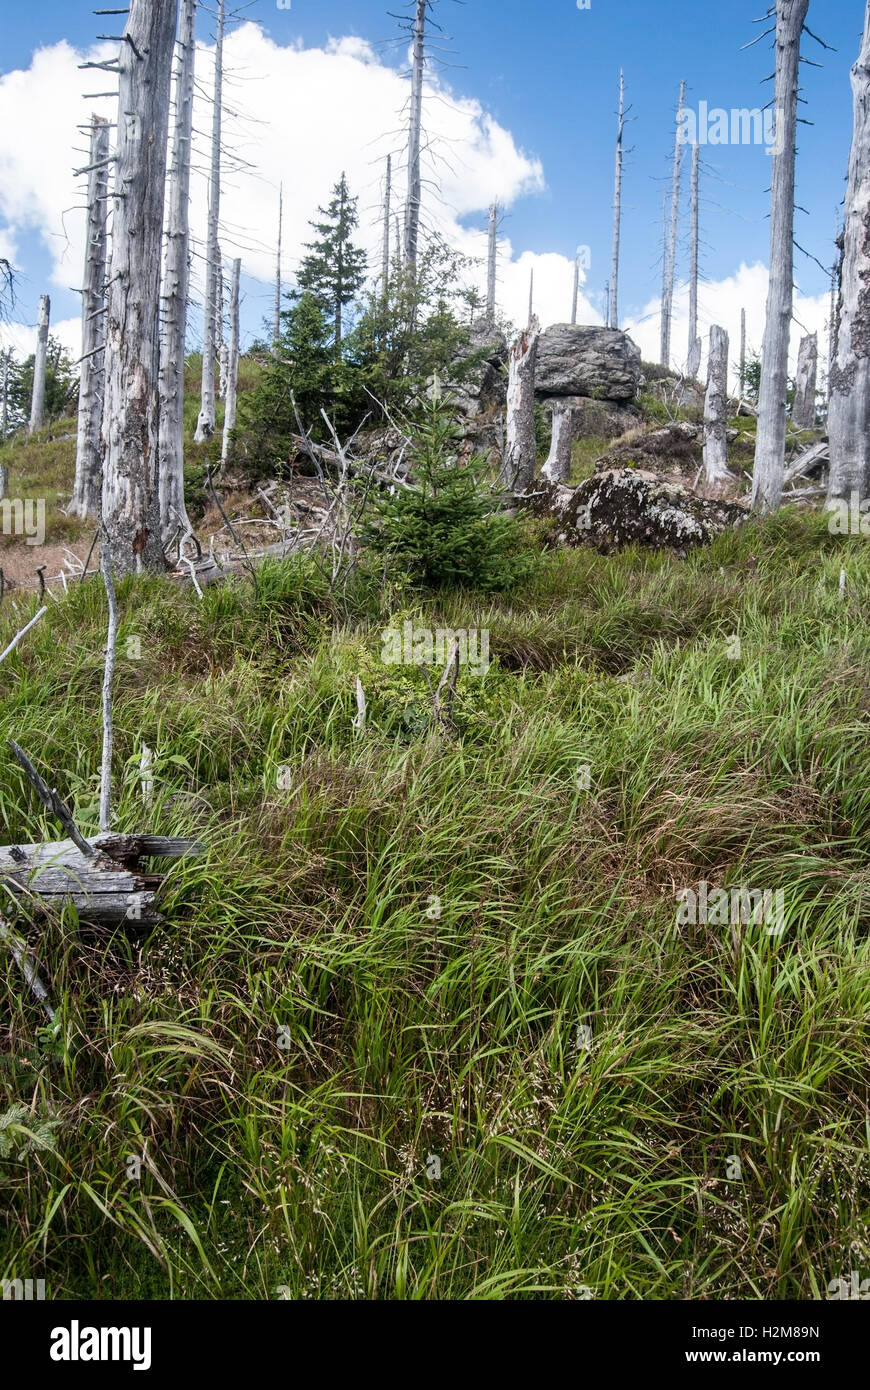 Kleiner Rachel hill with small rock formation and trees devastated by bark beetle infestation in Bavarian Forest - Stock Image